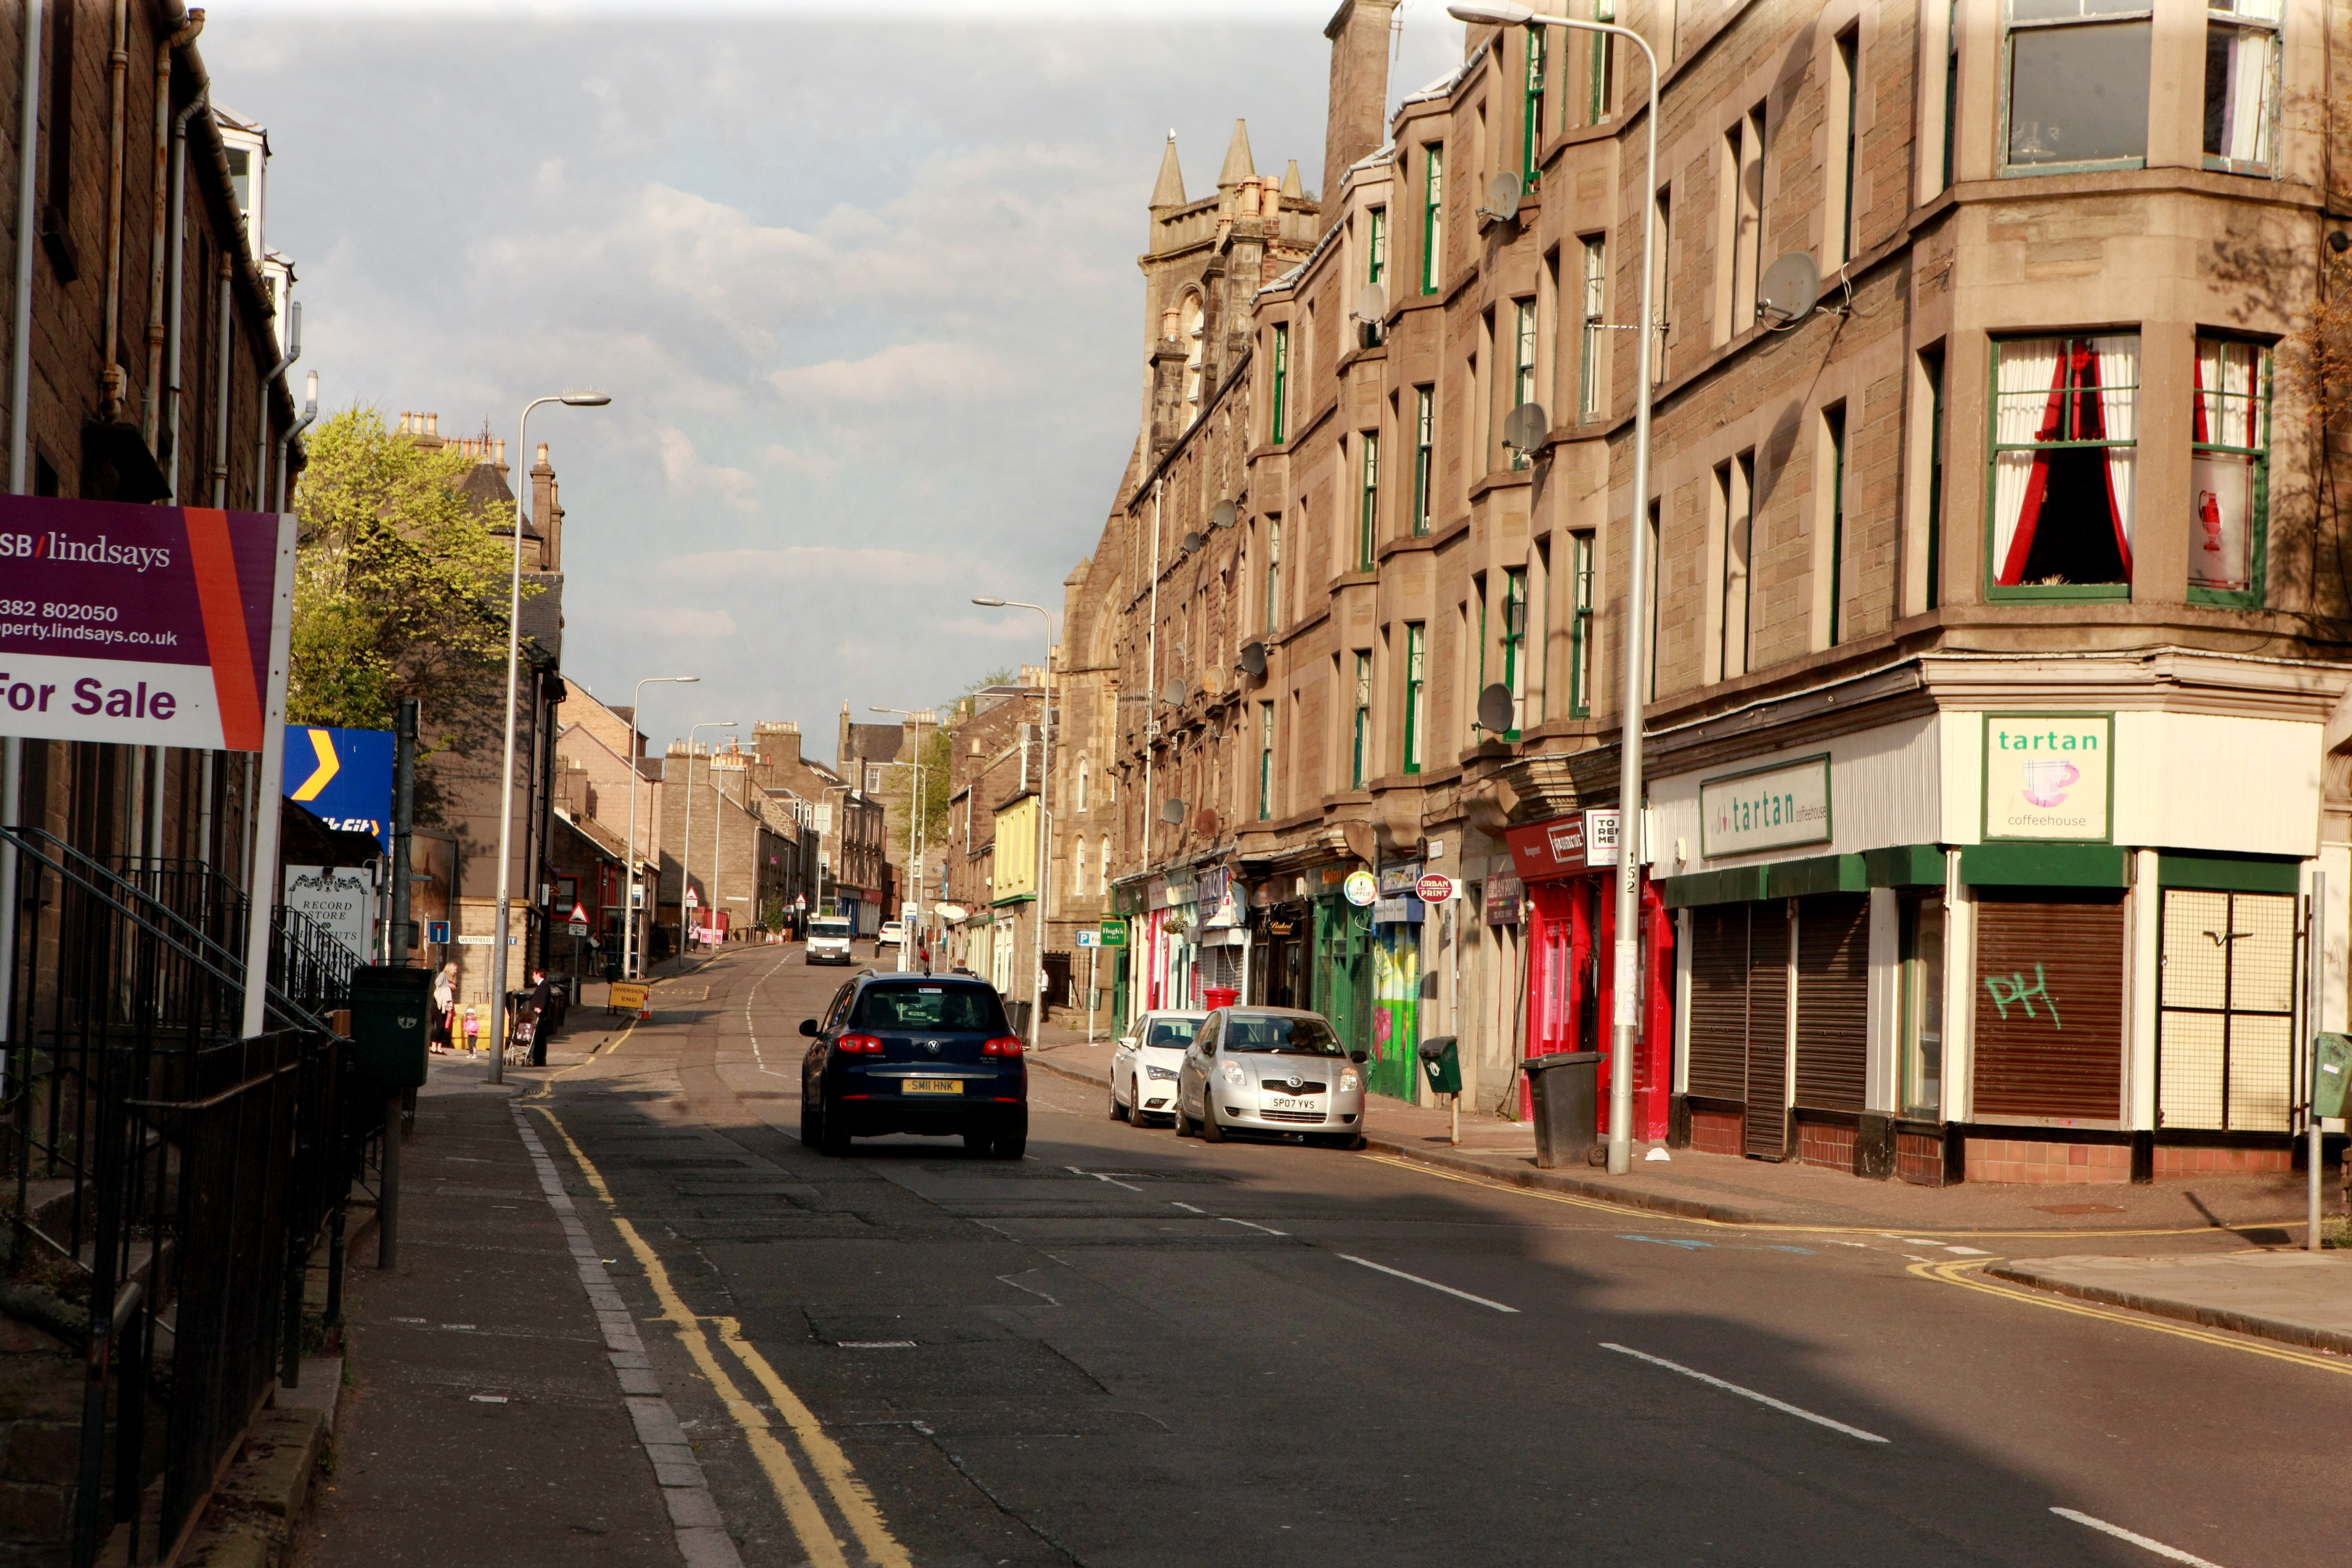 Parking is the single biggest concern of business owners on Perth Road